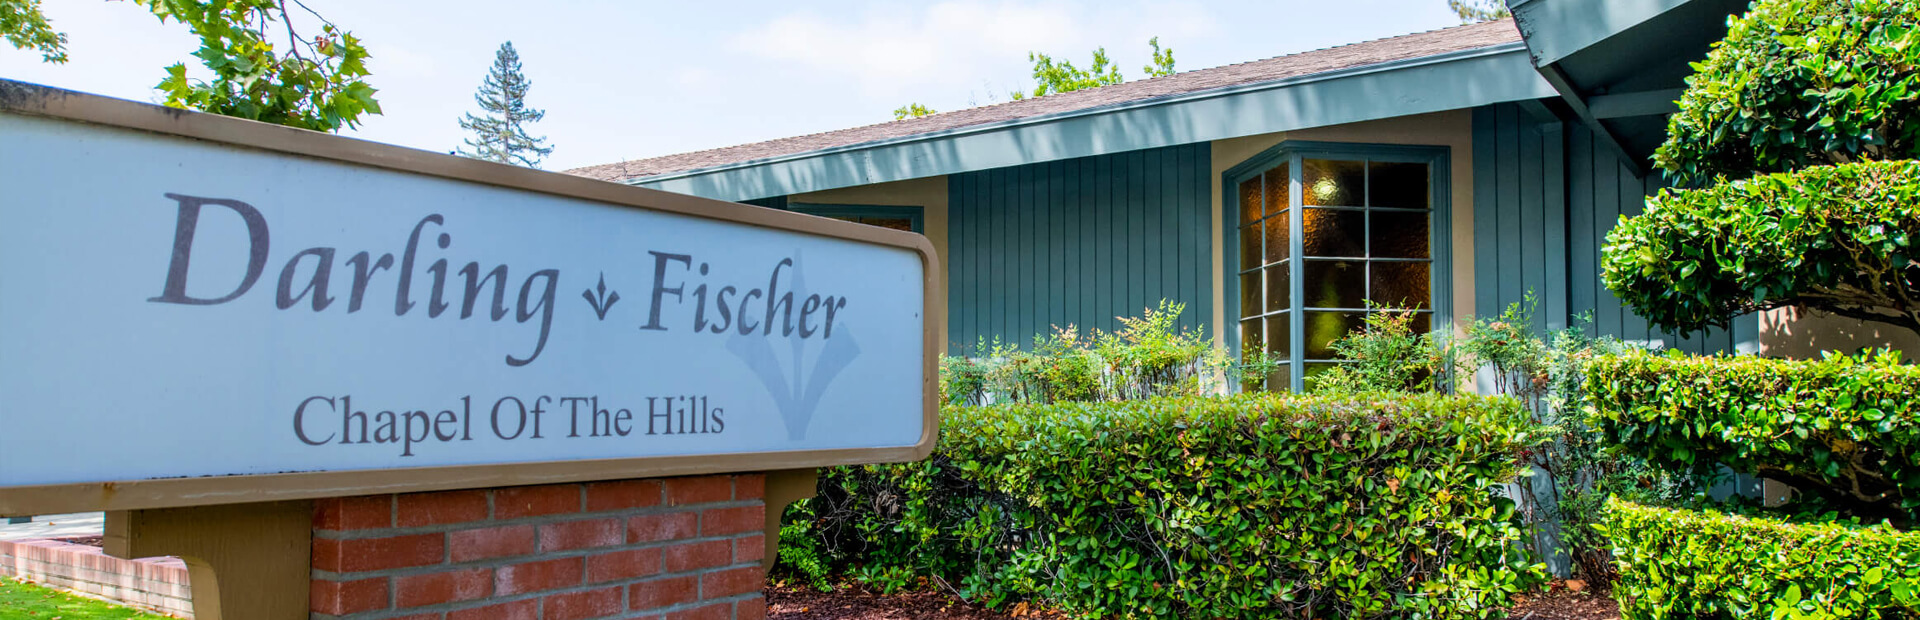 Darling & Fischer Chapel of the Hills in Los Gatos, CA